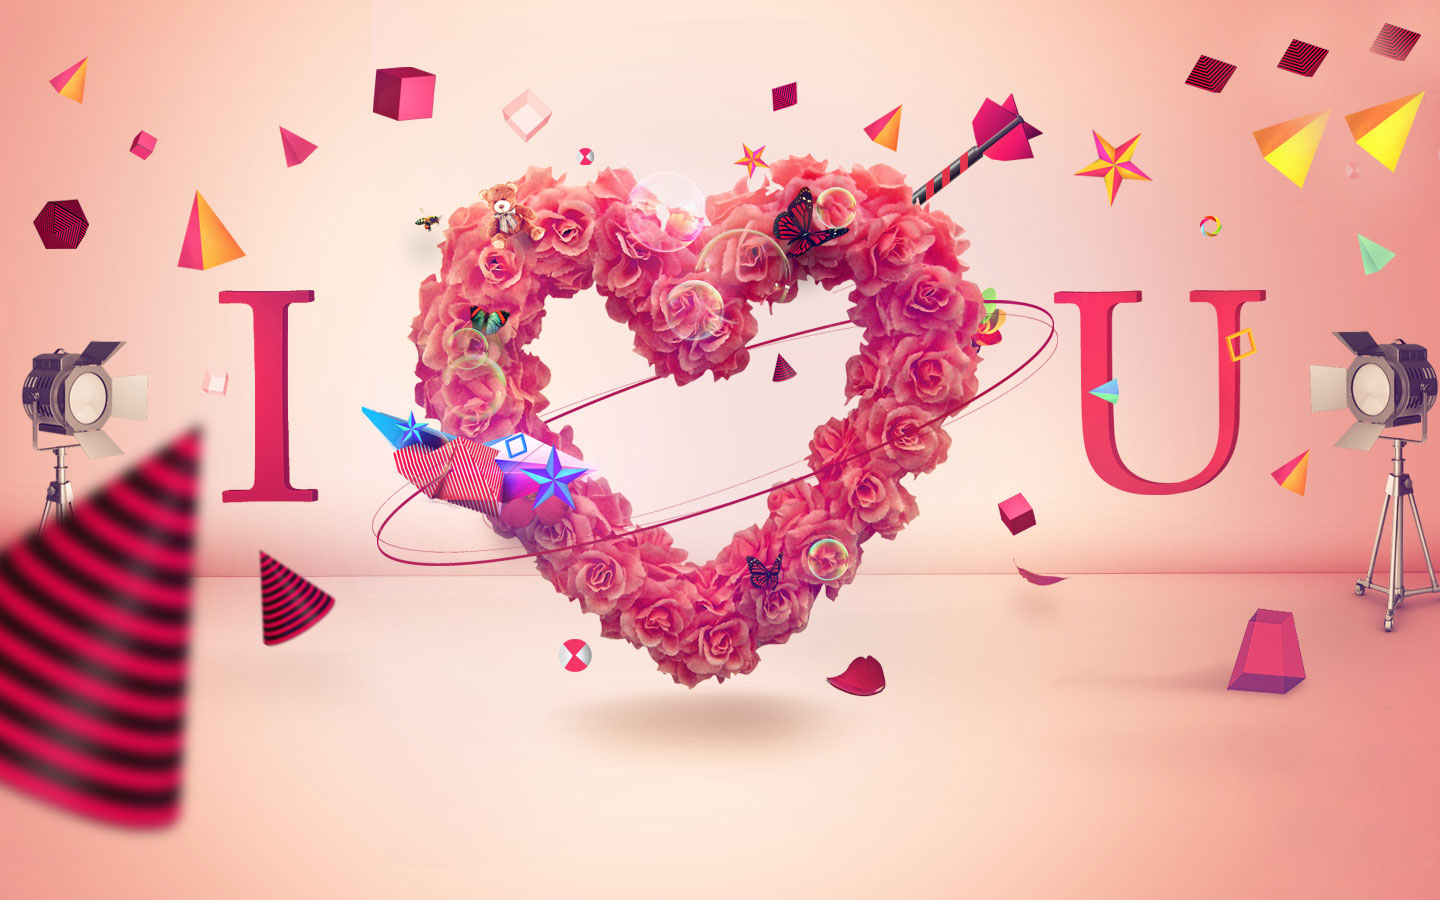 Free Download Love You Wallpapers Love 3d Wallpapers Love 3d